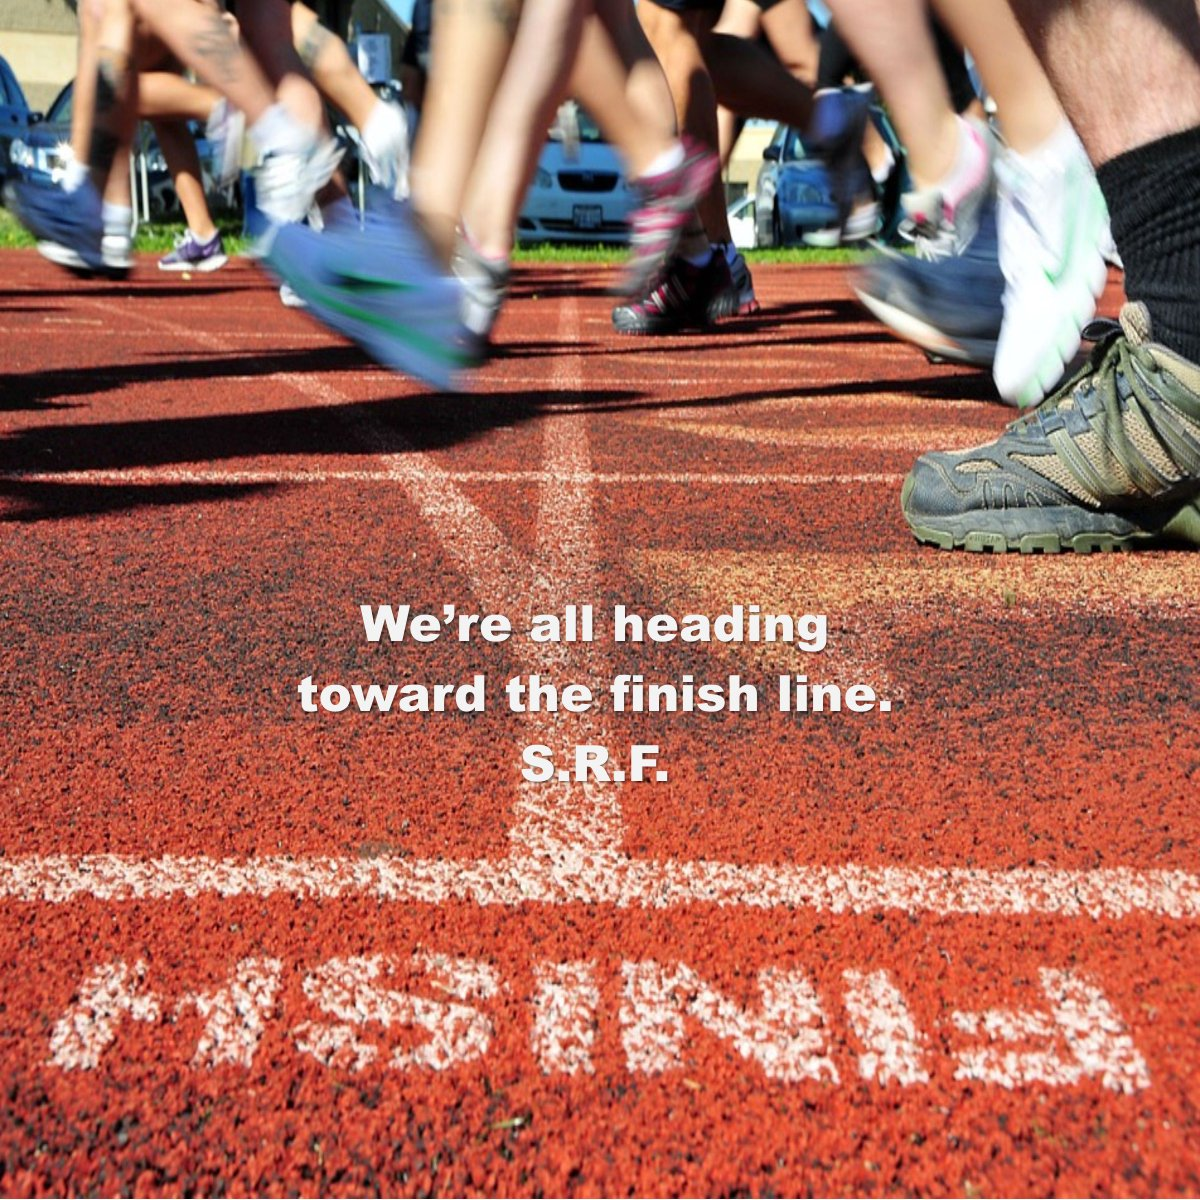 Yep, we're all heading in that direction. Run your best race. ~ S.R.F. #letstalkaboutfaith https://faithishowwelive.blogspot.com/2019/02/the-finish-line.html…